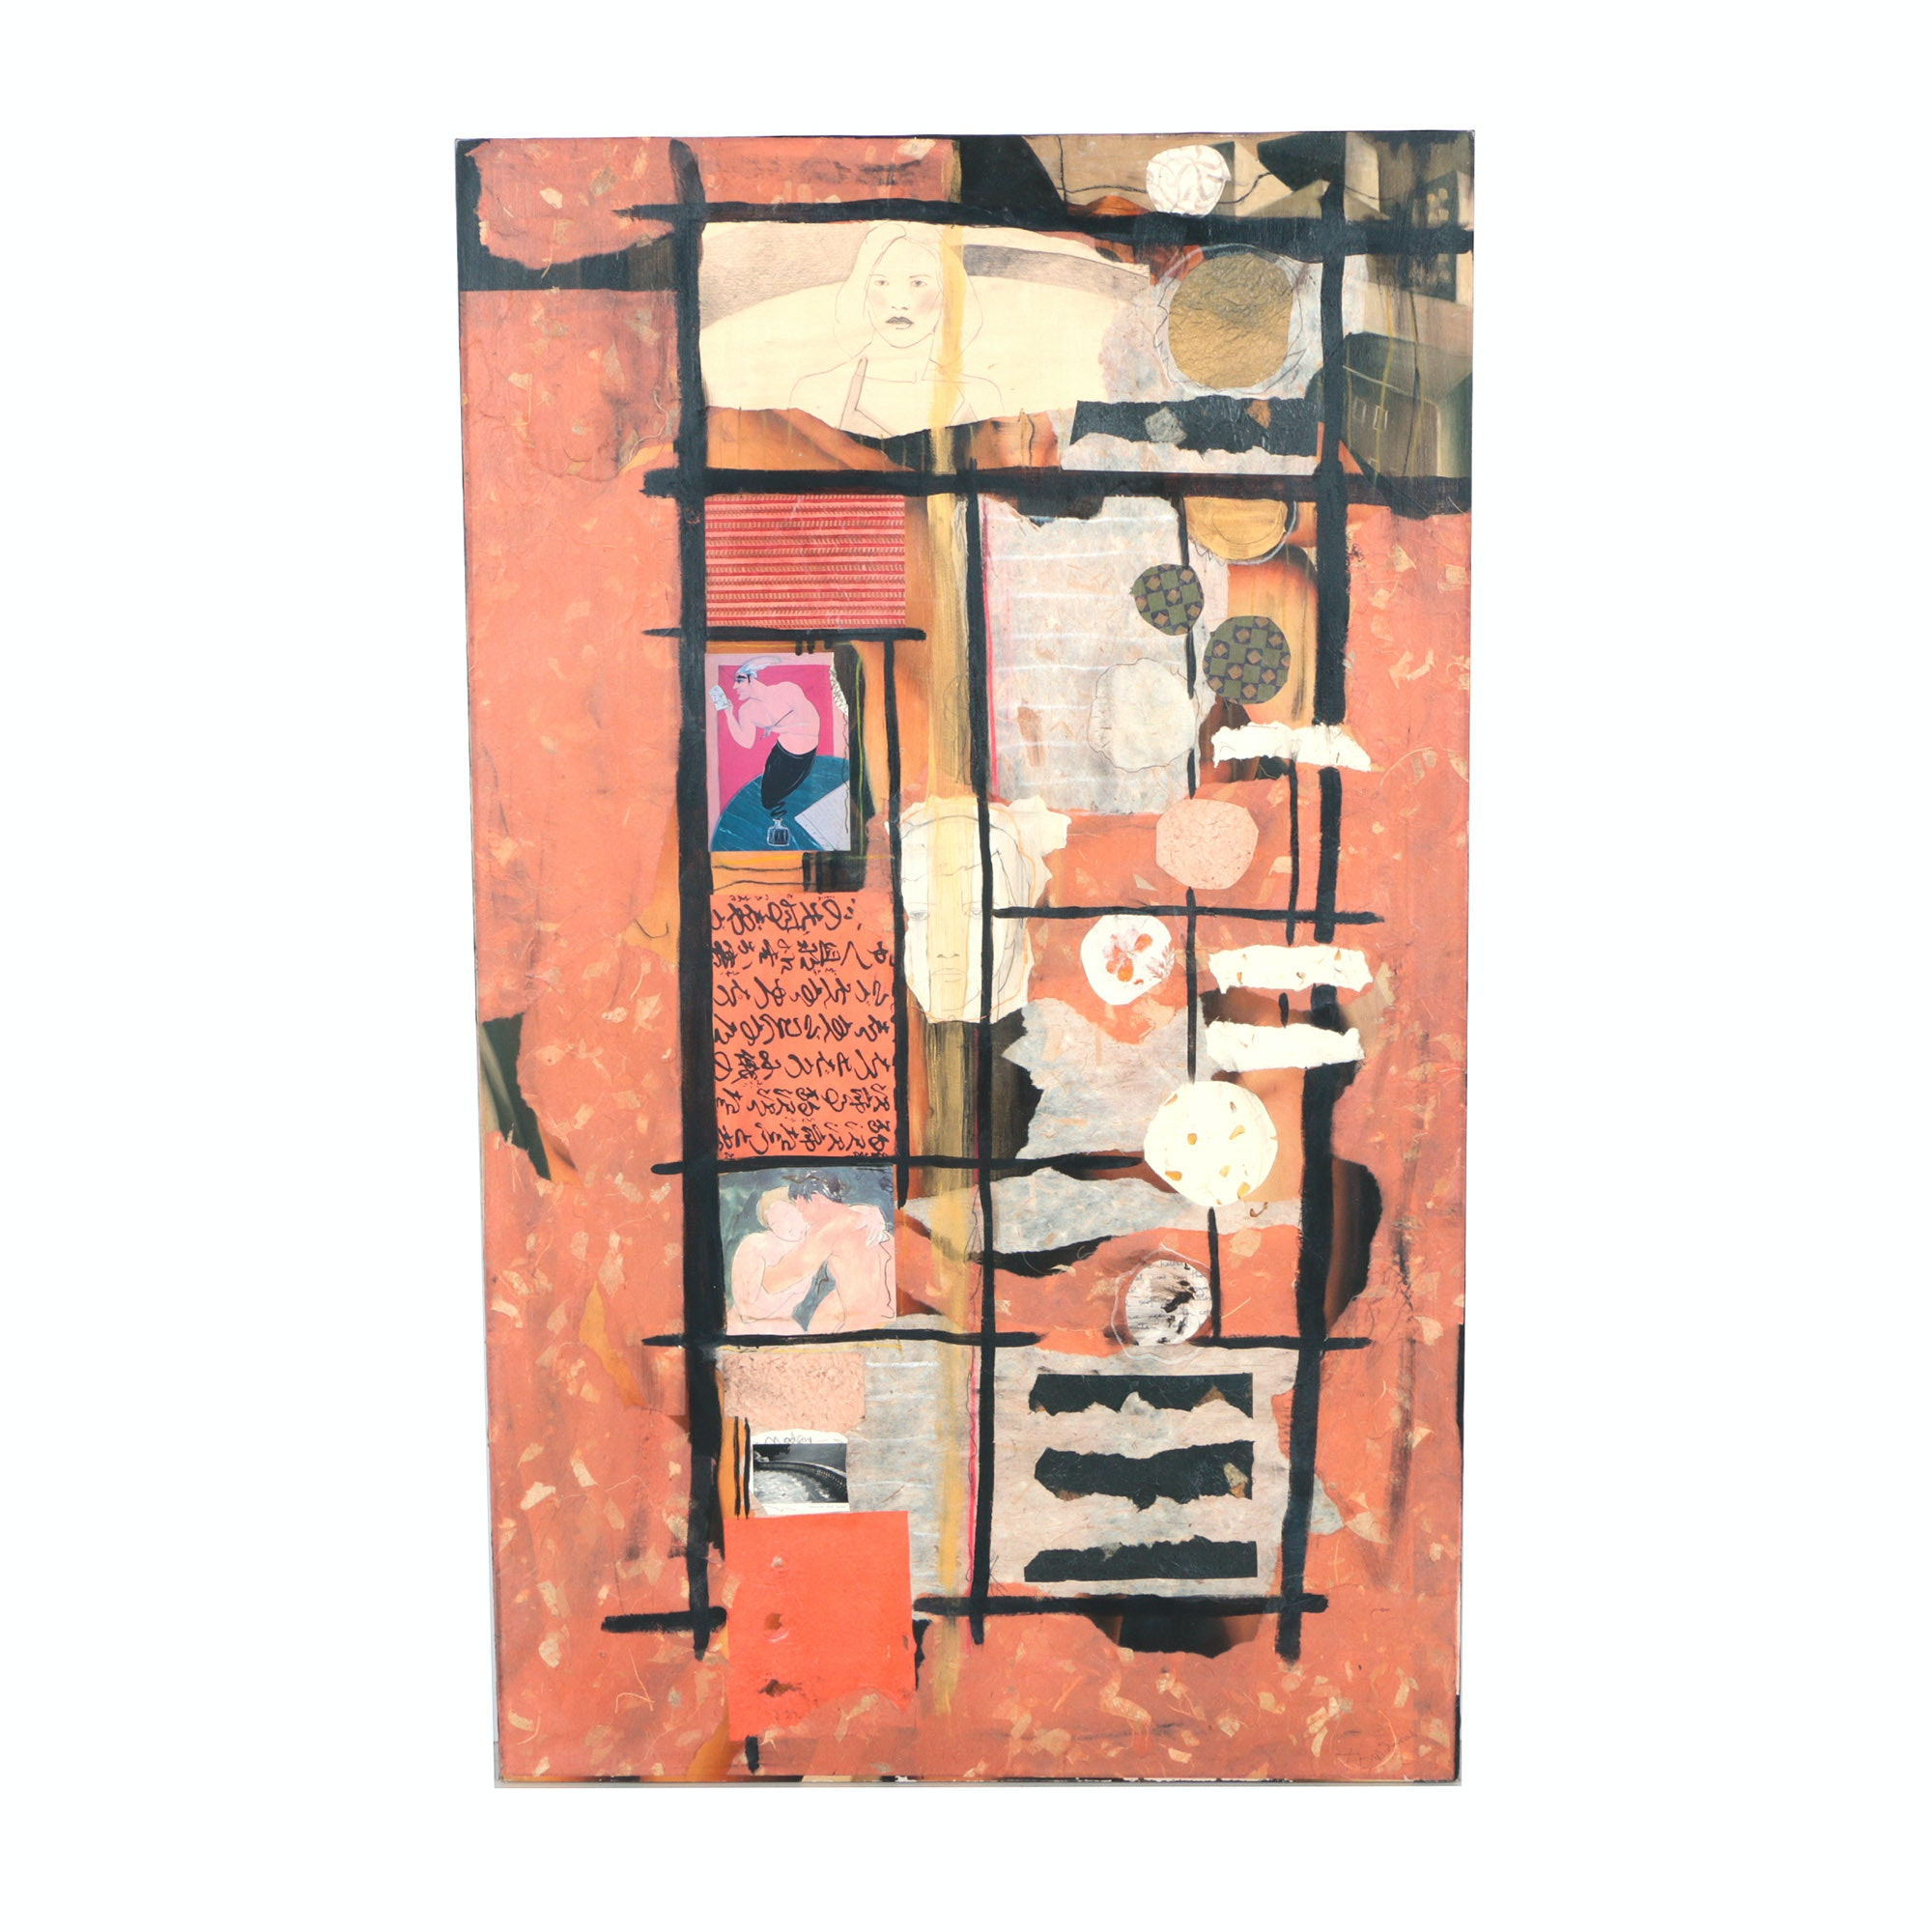 David Widmer Mixed Media Collage on Canvas